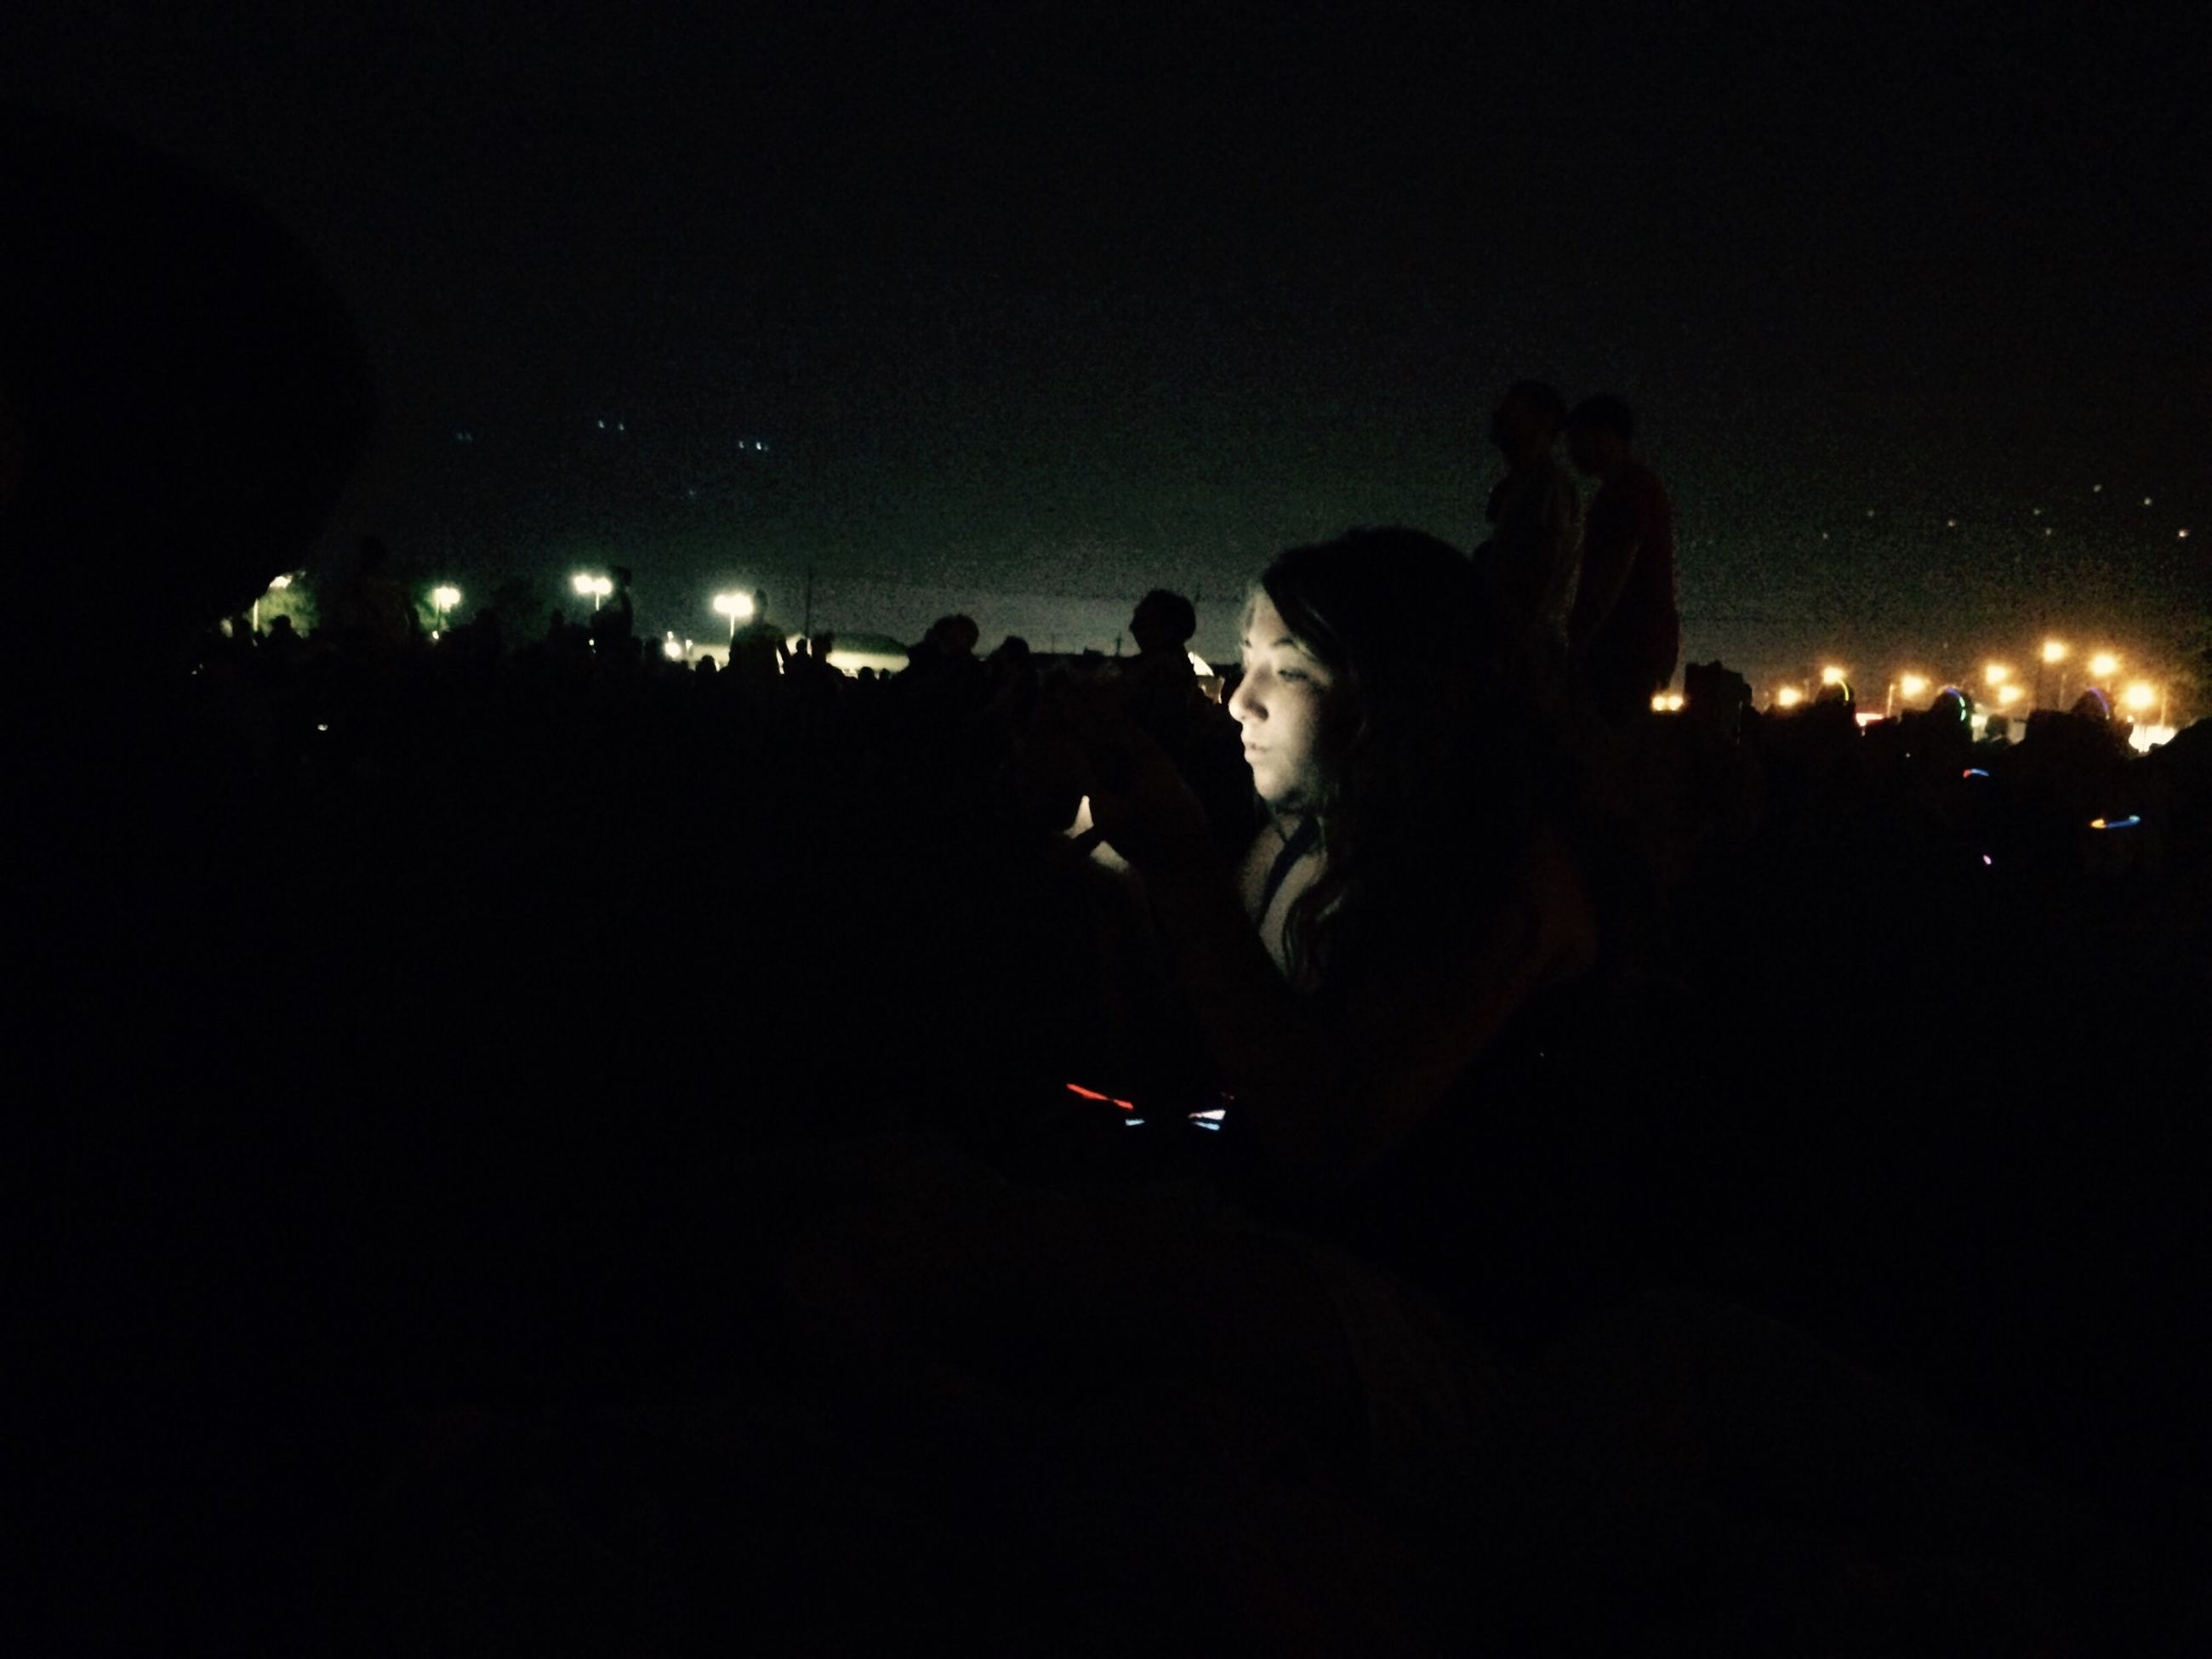 night, illuminated, lifestyles, men, leisure activity, arts culture and entertainment, performance, music, silhouette, nightlife, large group of people, person, event, dark, crowd, enjoyment, concert, youth culture